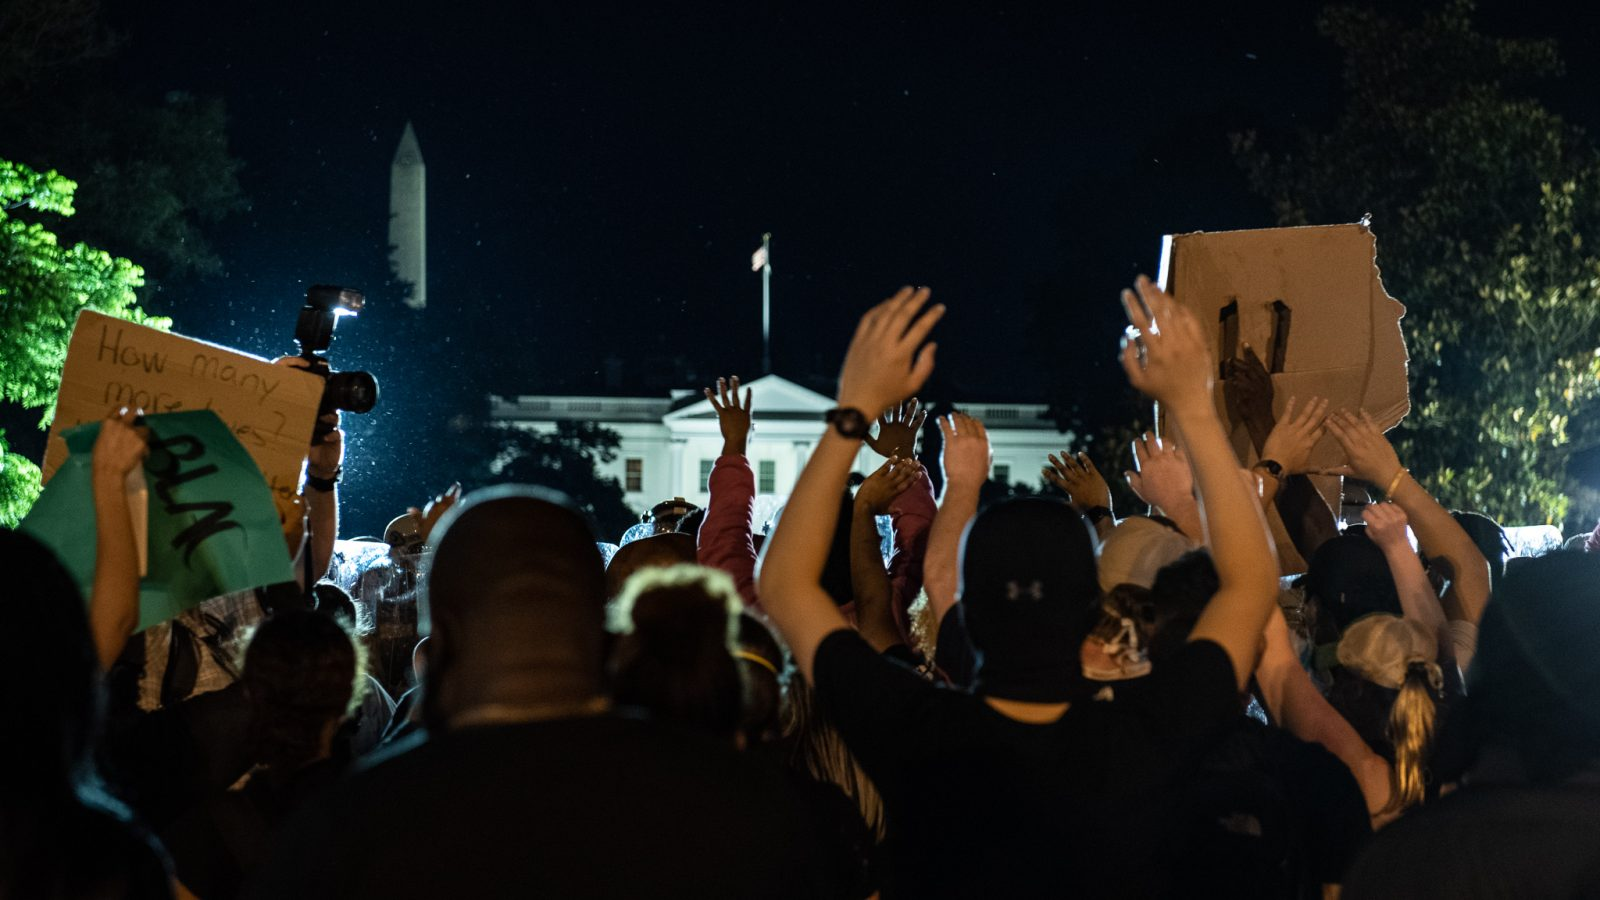 Racial justice protesters stand with their hands raised, with the White House in the background